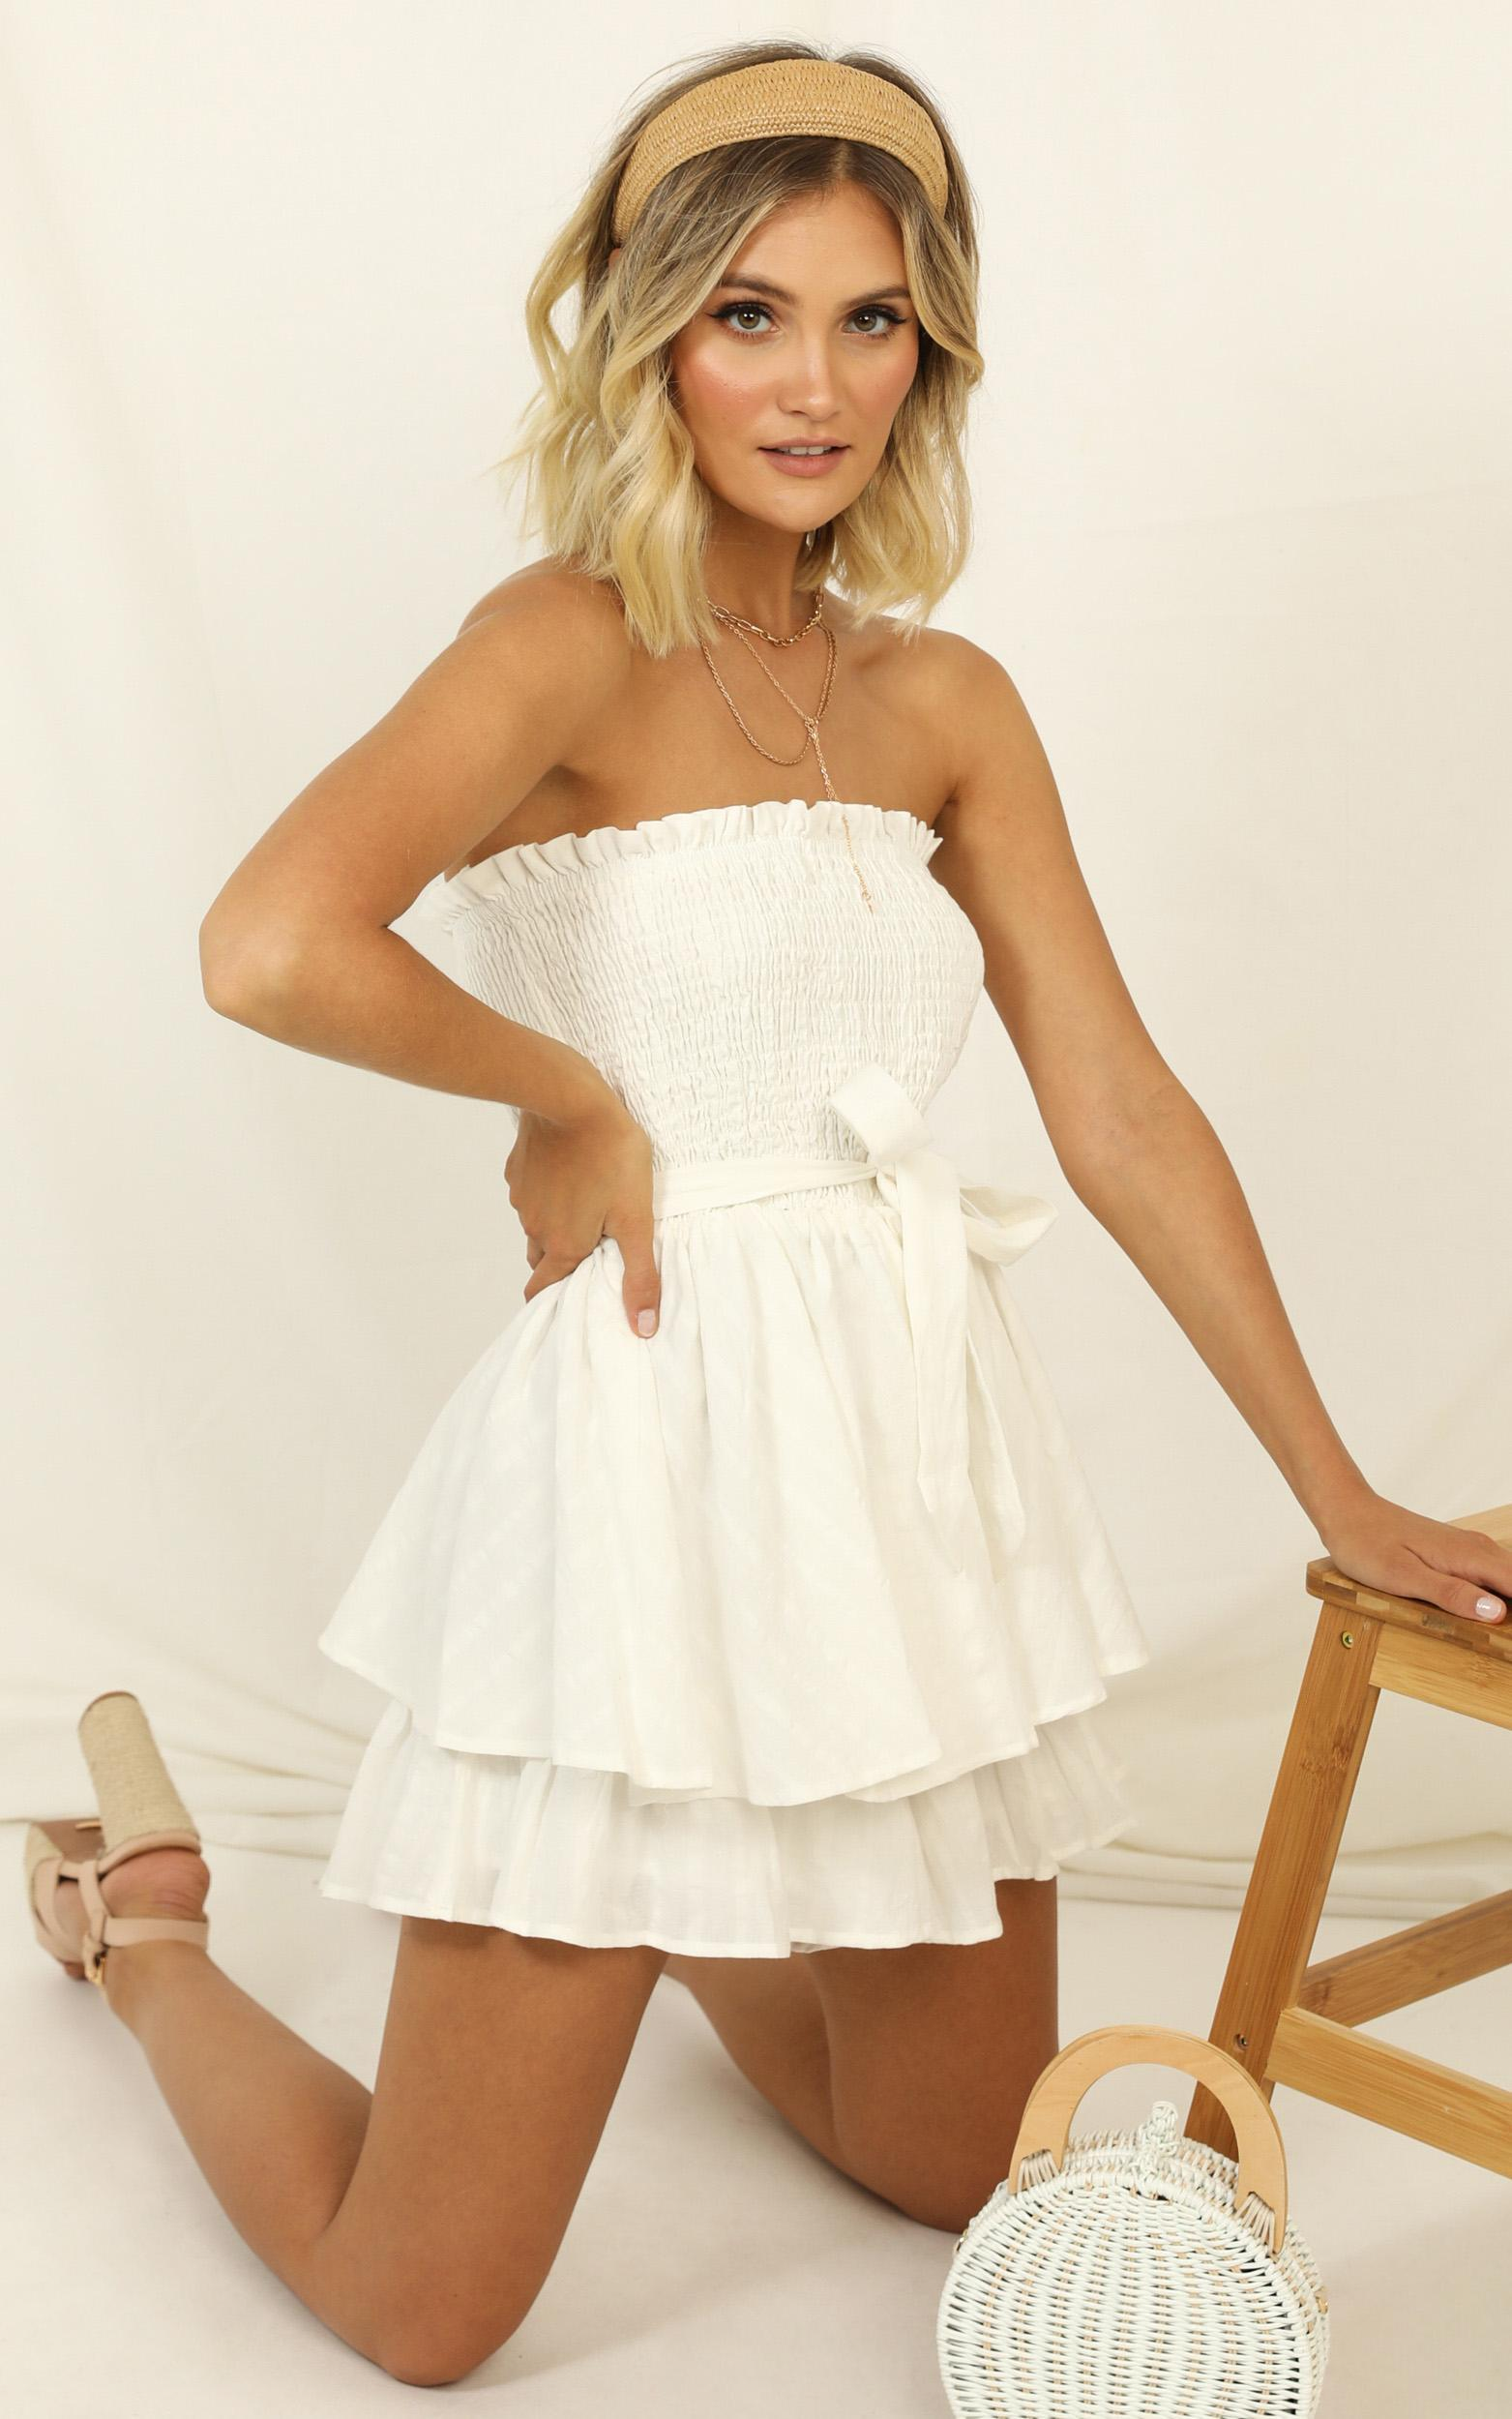 Mutual Love Playsuit in white - 20 (XXXXL), White, hi-res image number null